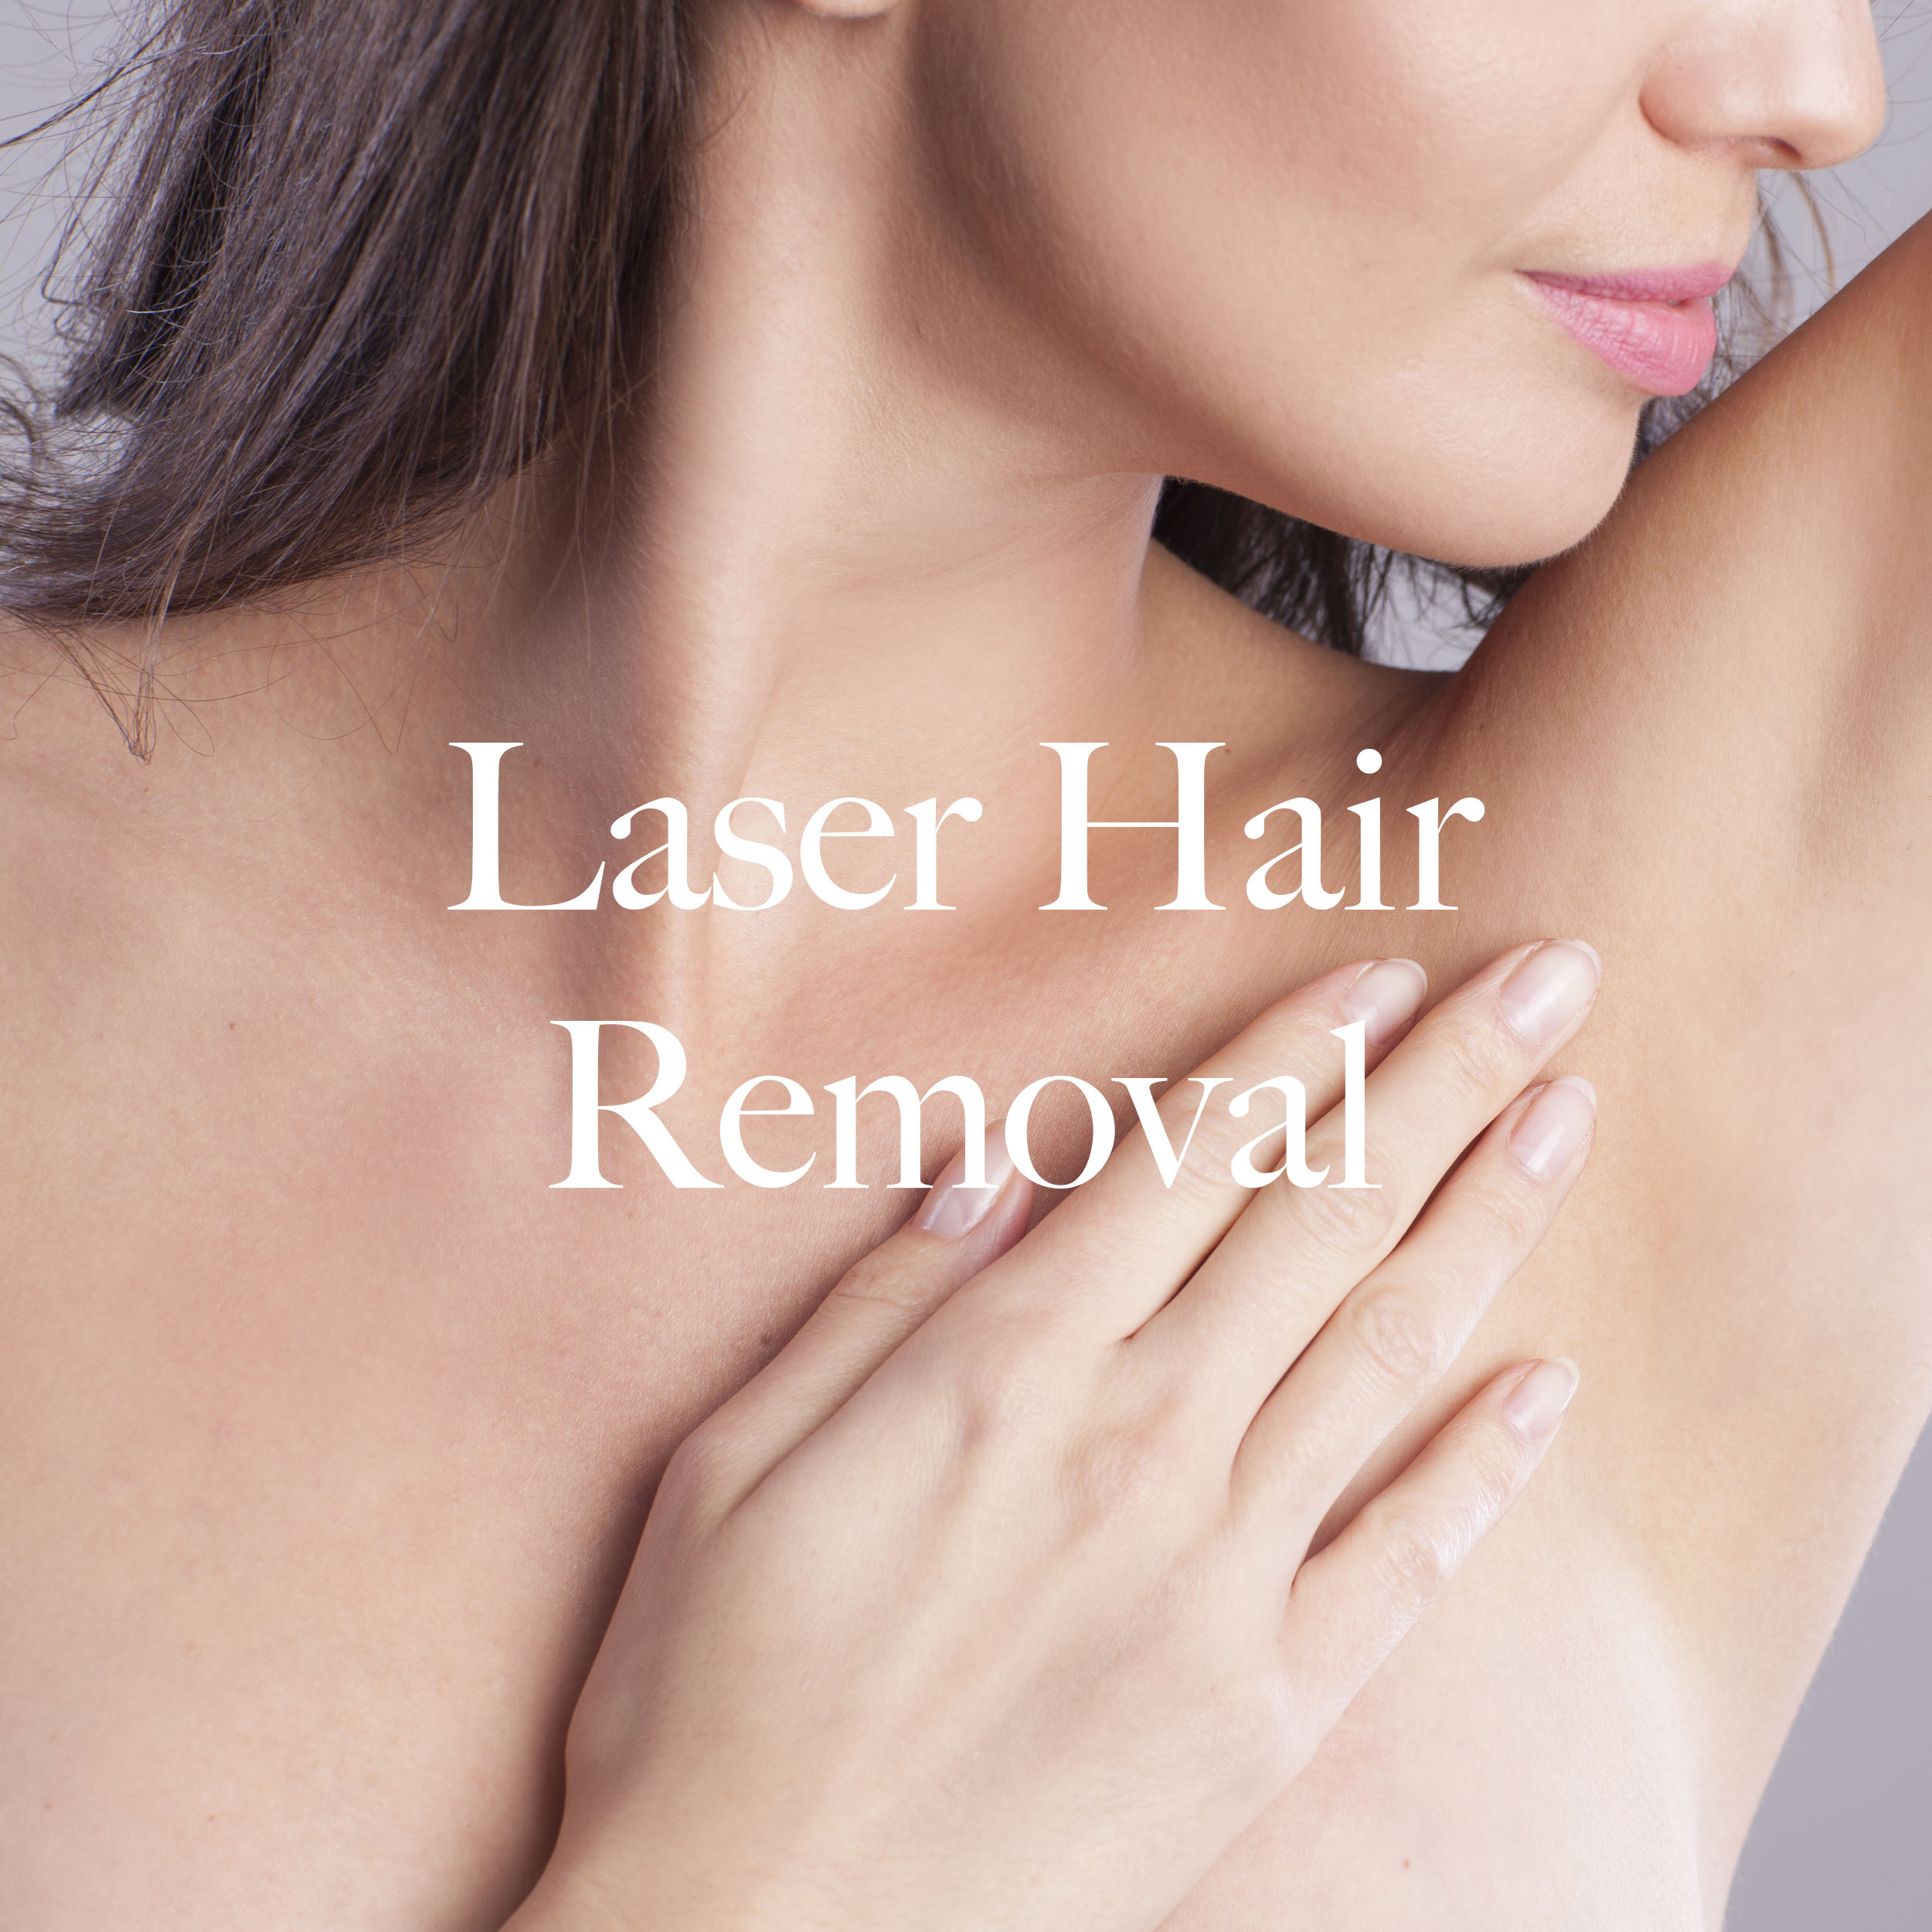 laserhairremoval copy.jpg